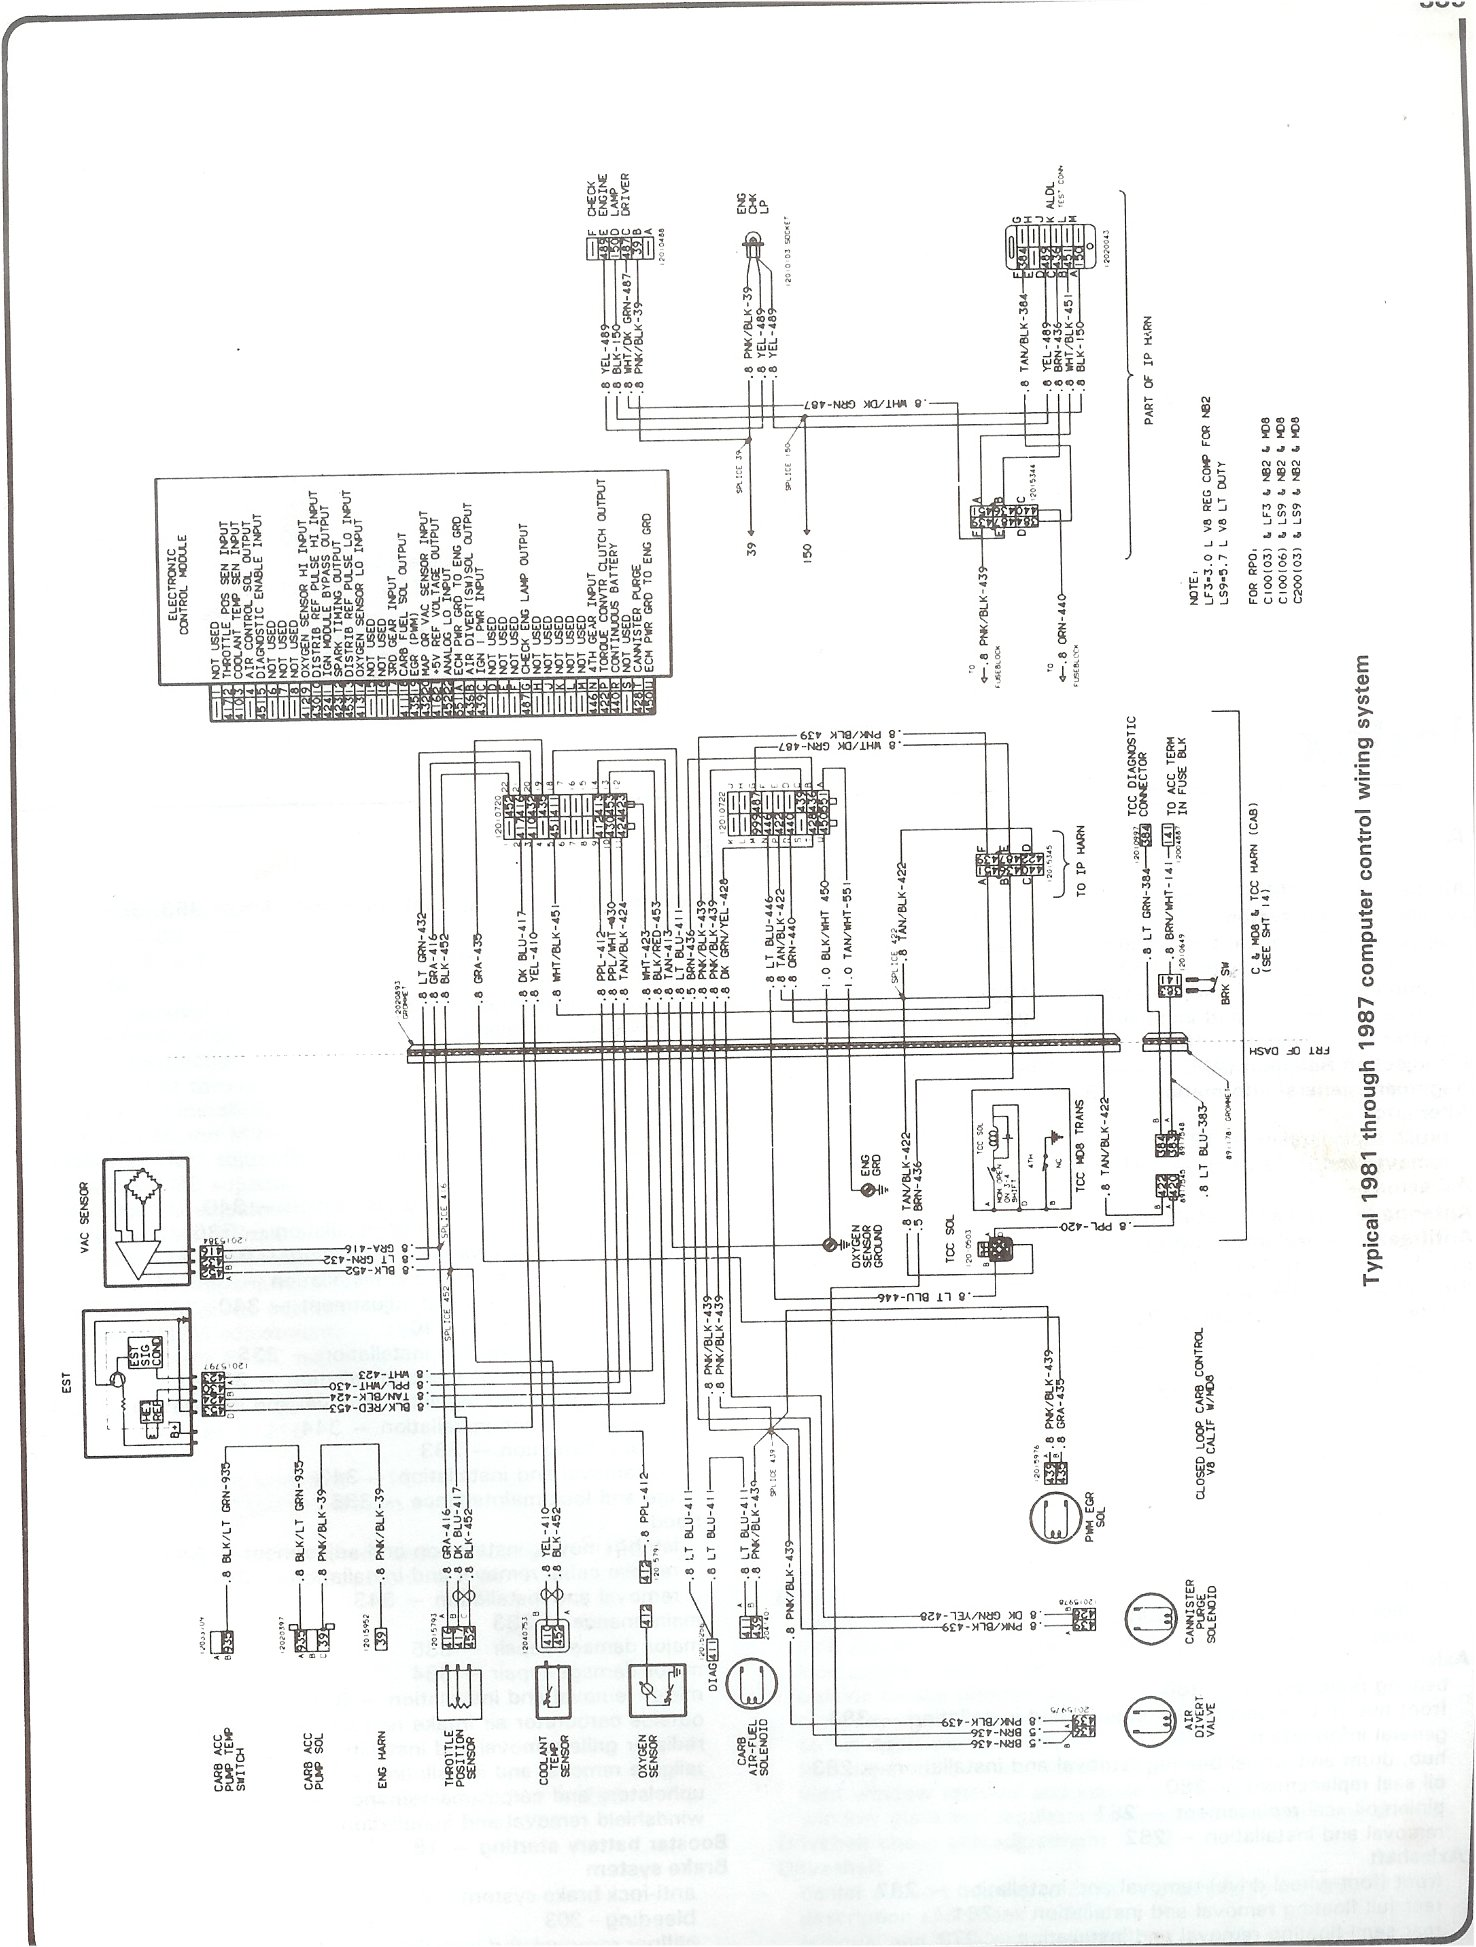 Complete 73 87 Wiring Diagrams Chevy Uplander Wiring Diagram 1975 Chevy P30  Wiring Diagram